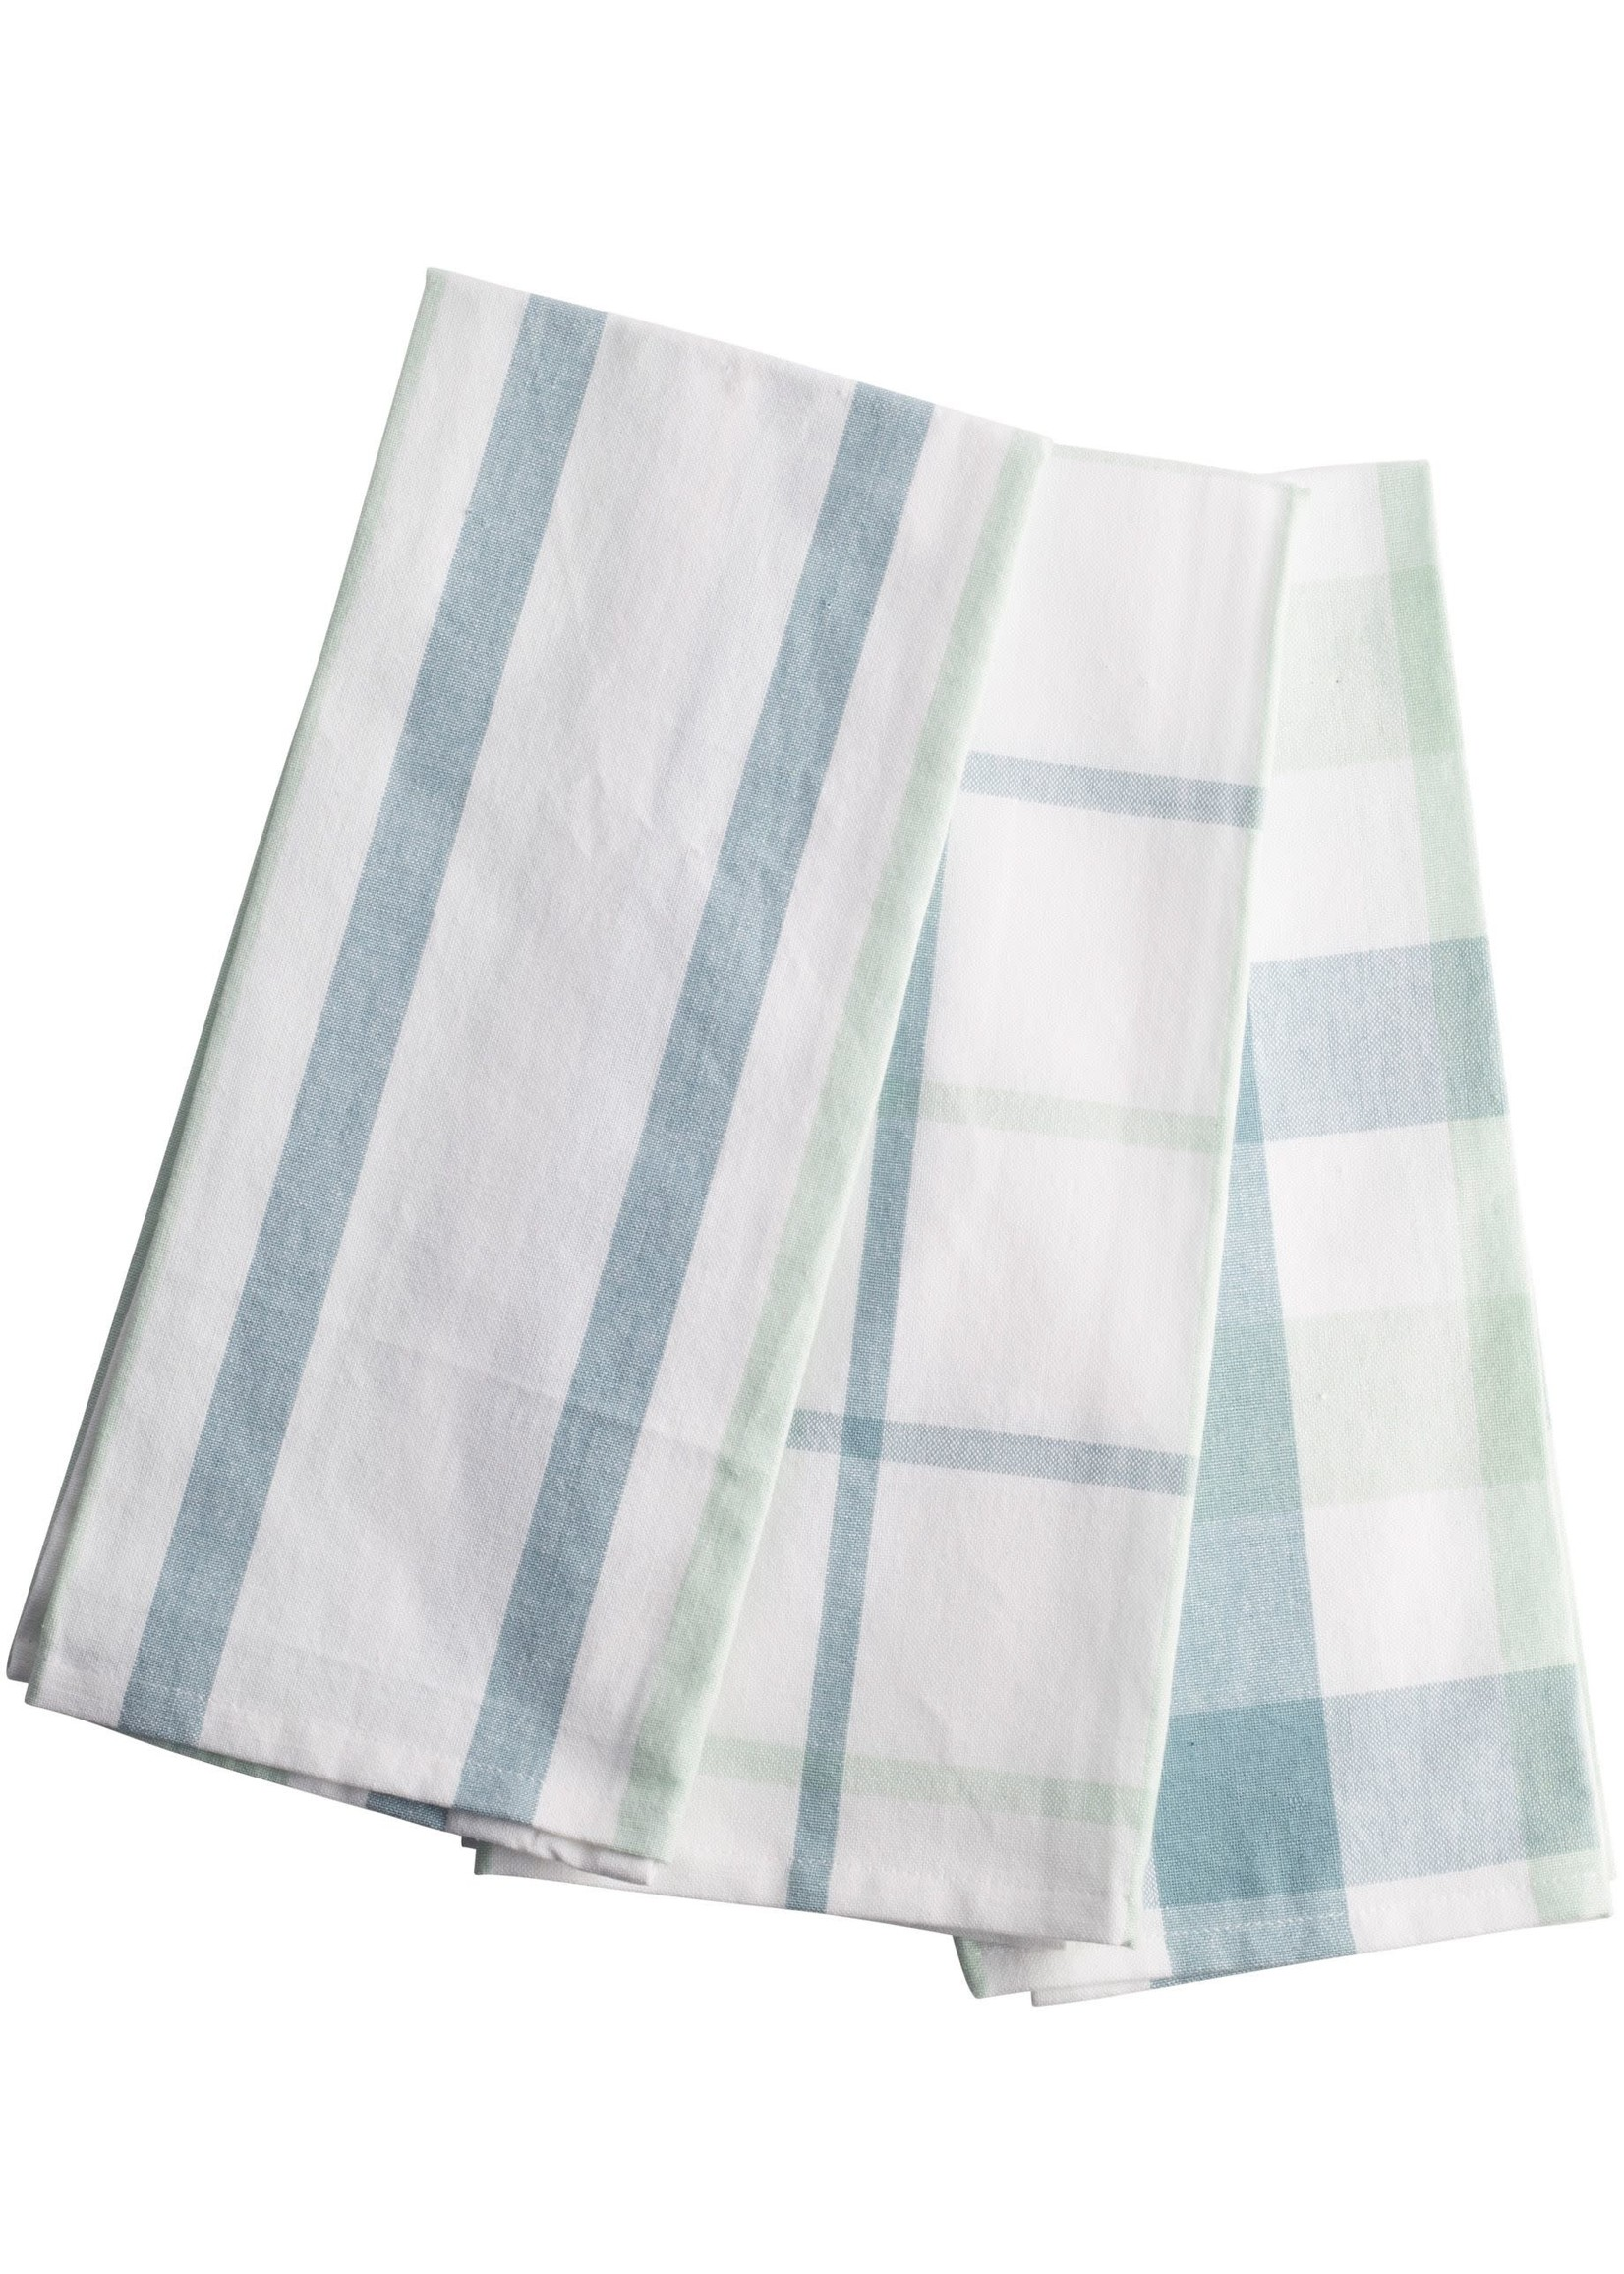 Home Essentials Kitchen Towel Stripe Plaid Smoke And Blue Pack of 3